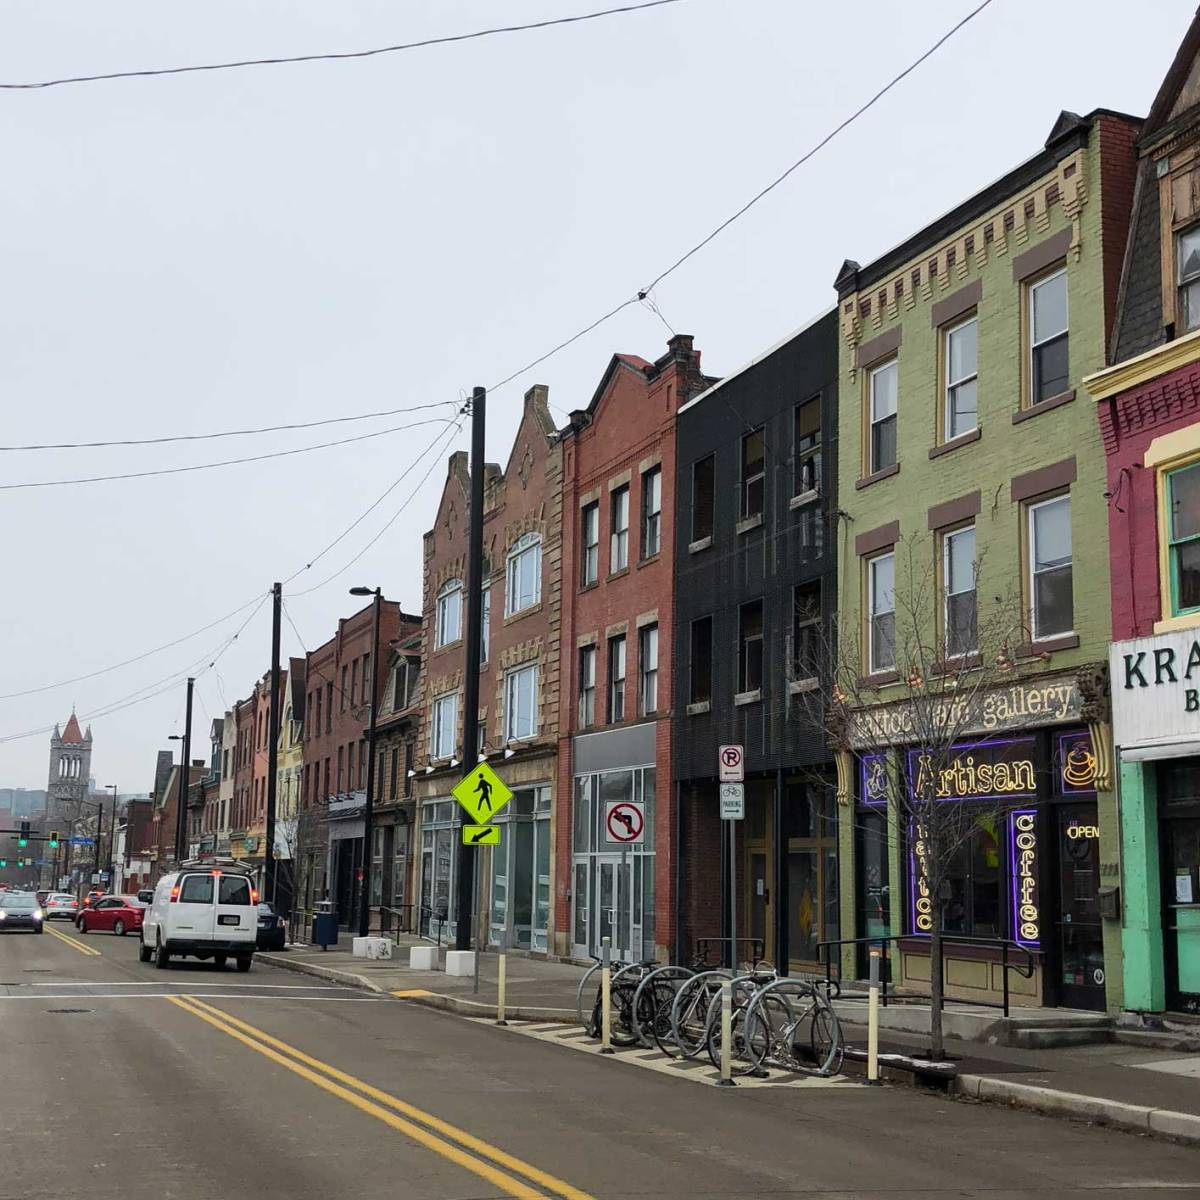 An image of a grey sky and quaint buildings on Penn Ave. in Pittsurgh